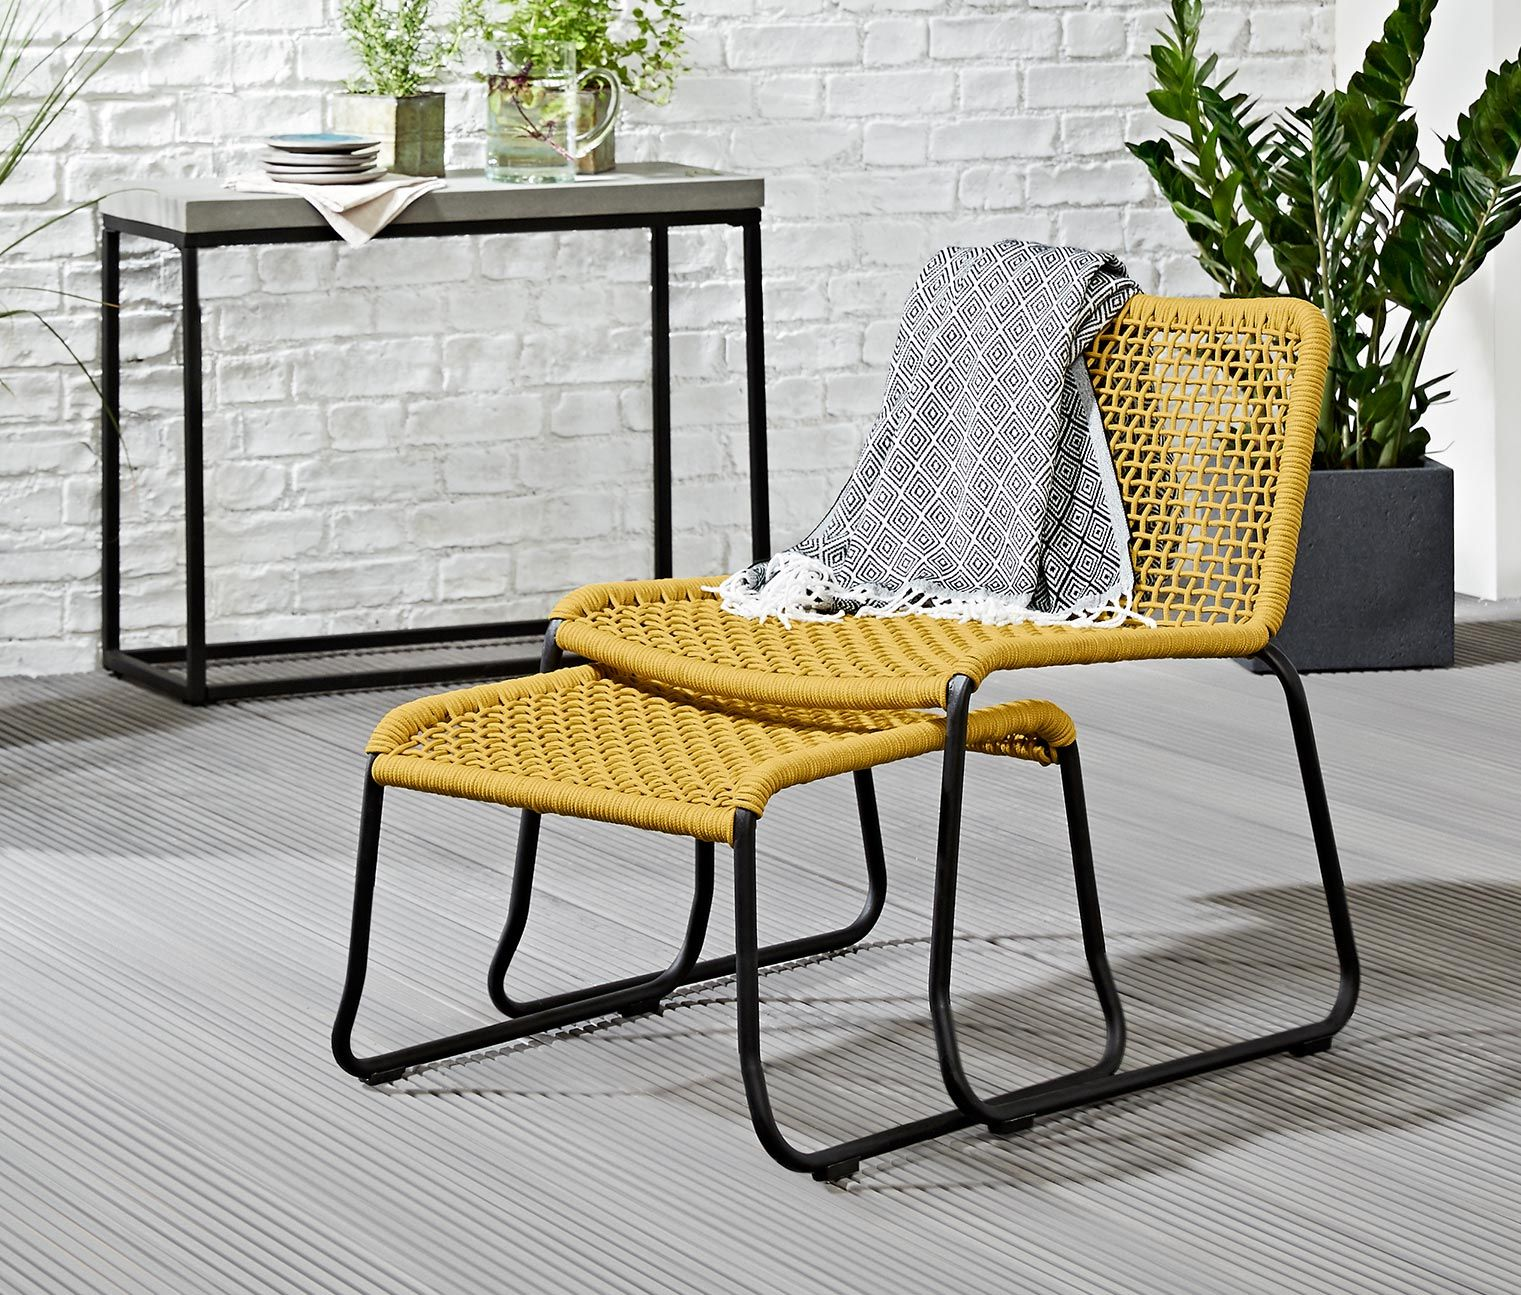 Tchibo Loungemöbel Lounge Sessel Mit Fußteil Garten Garden Outdoor Chairs Lounge